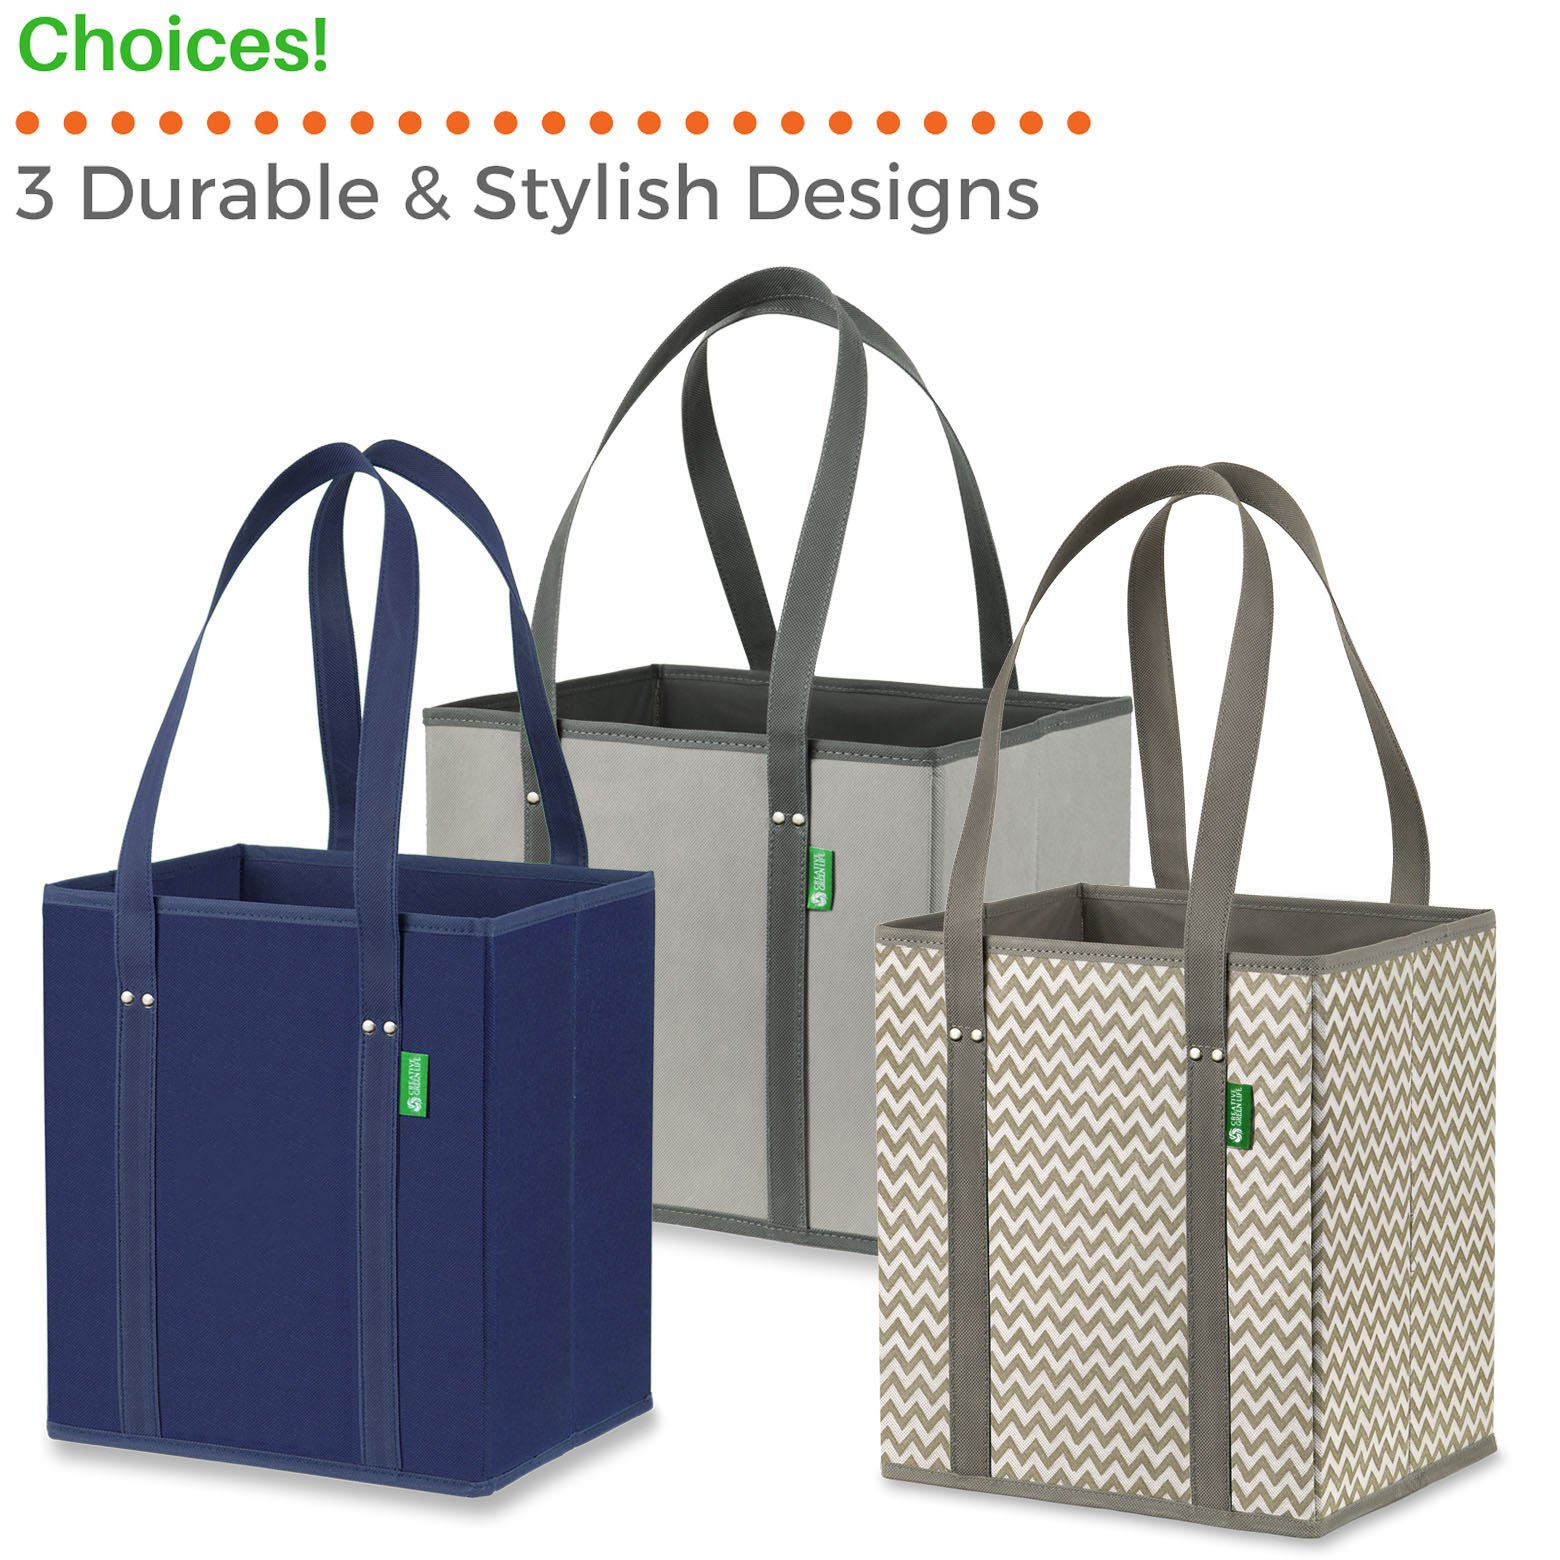 Reusable Grocery Shopping Box Bags (3 Pack - Gray). Large, Premium Quality Heavy Duty Tote Bag Set with Extra Long Handles & Reinforced Bottom. Foldable, Collapsible, Durable & Eco Friendly by Creative Green Life (Image #7)